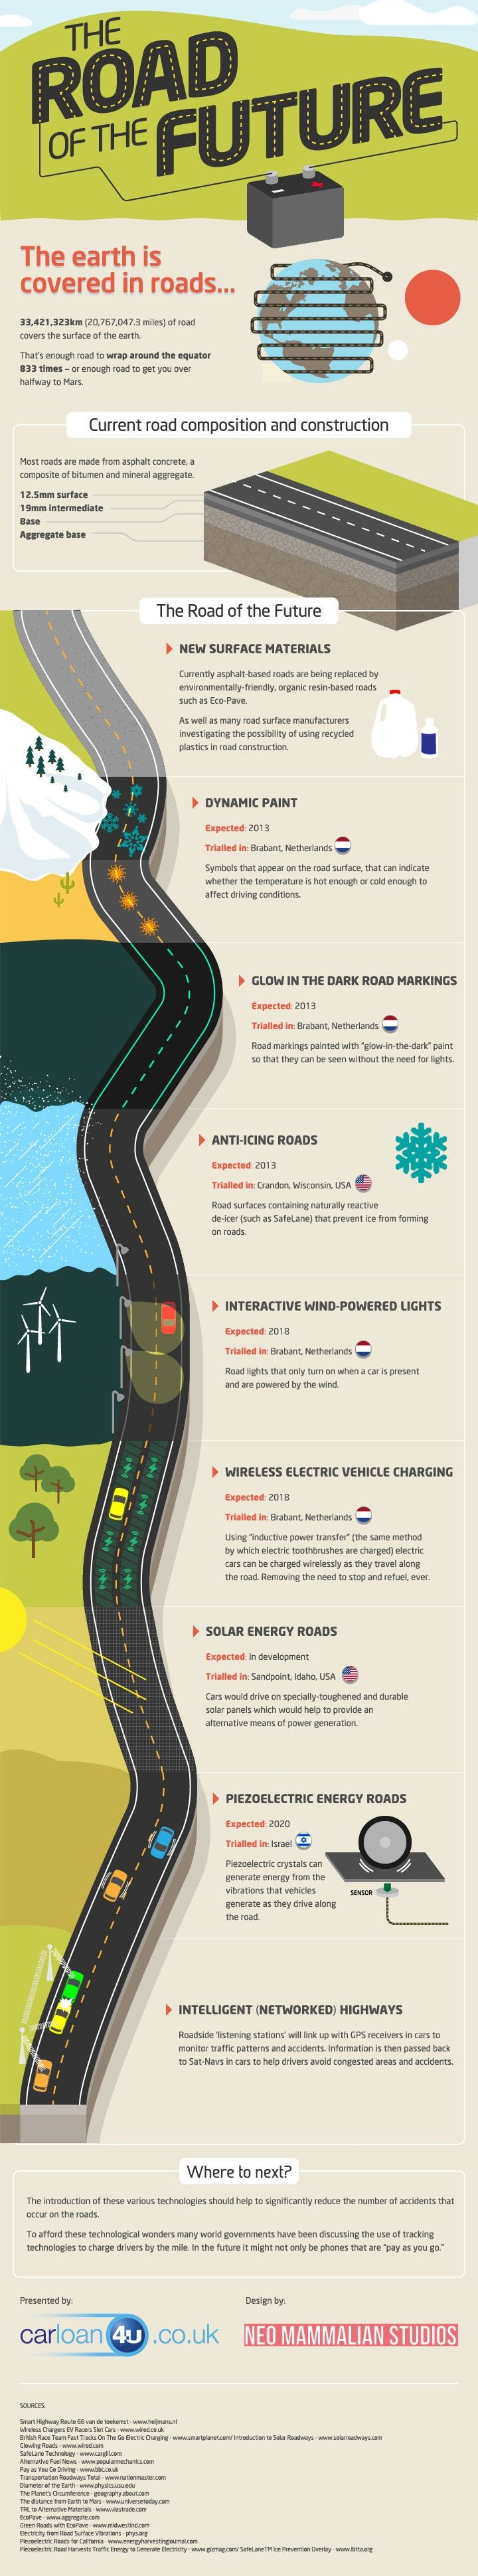 Here's the smart road of the future